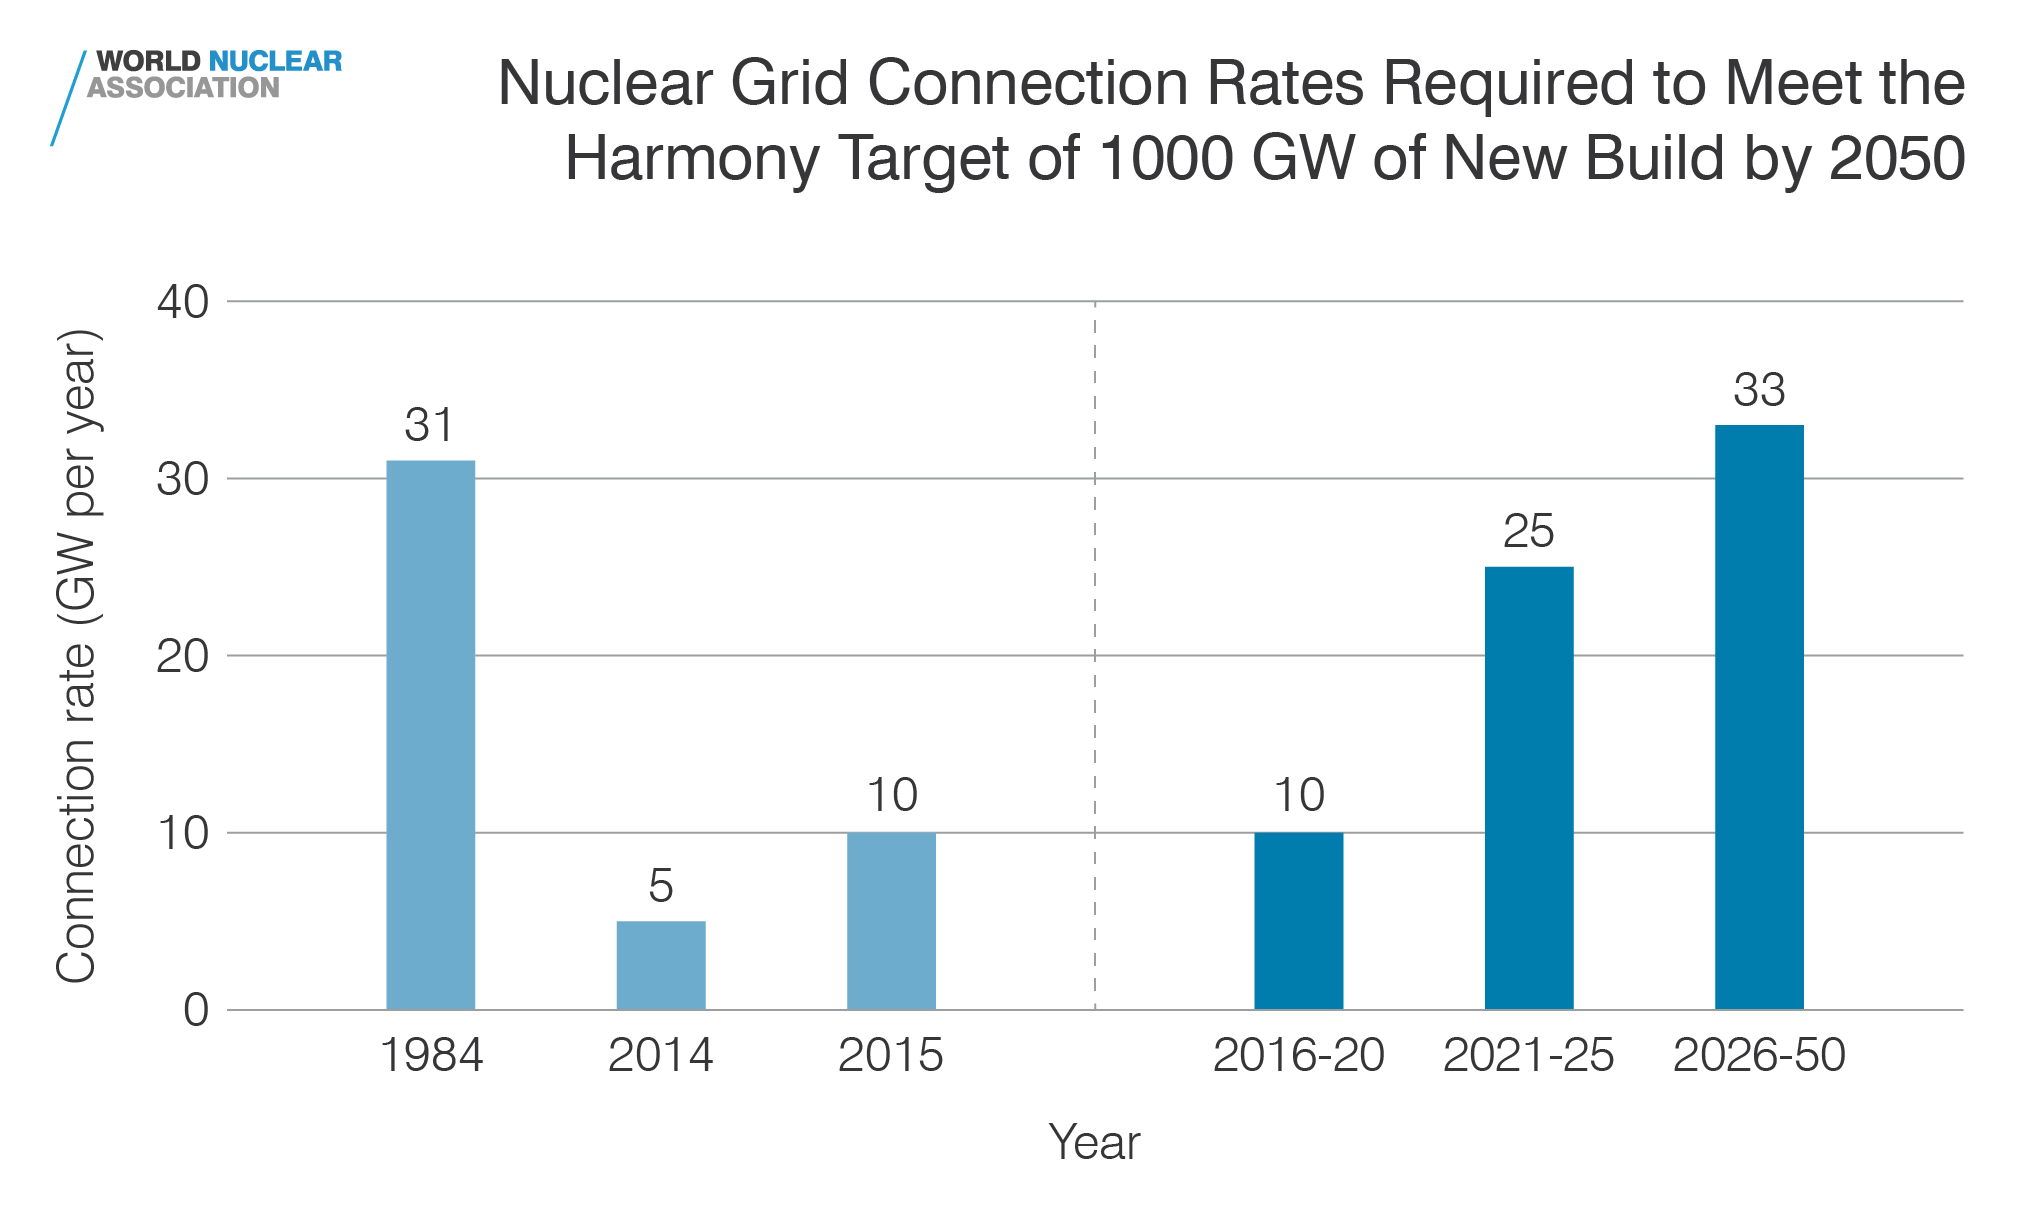 Nuclear grid connection rates required to meet the Harmony target of 1000 GW of new build by 2050